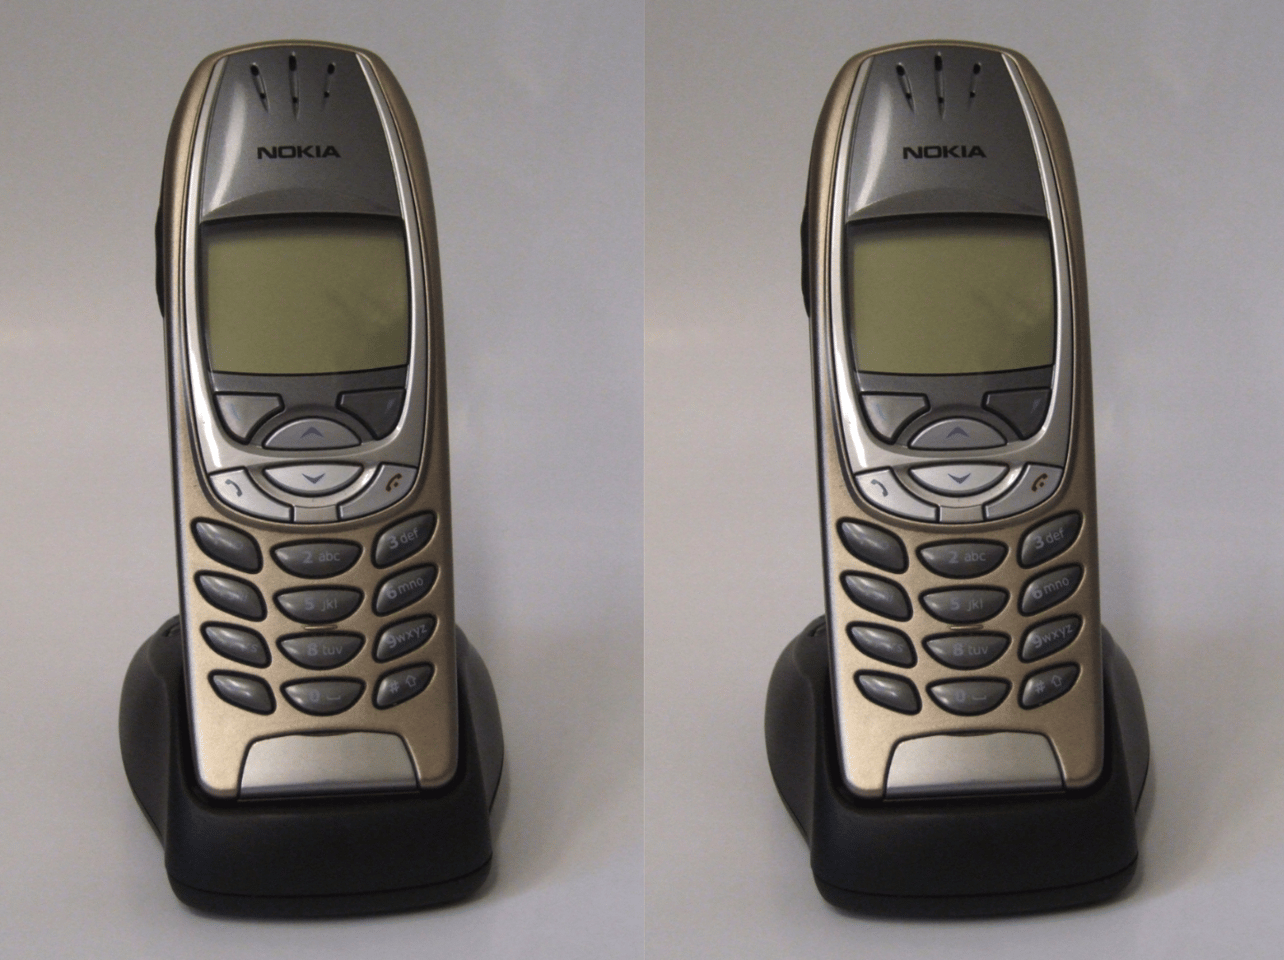 The Nokia 6310i in its charging dock